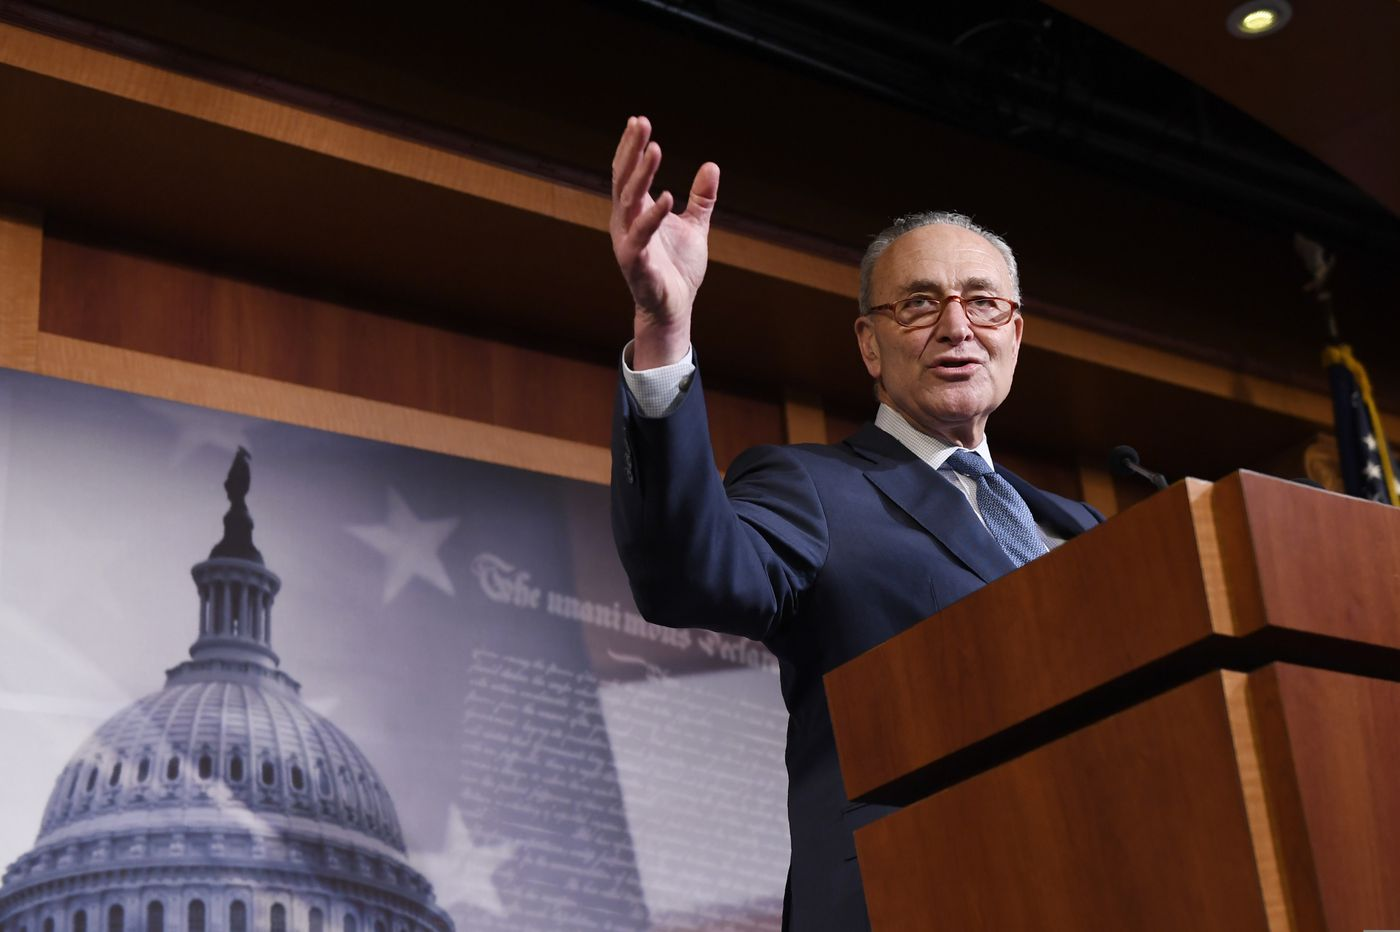 Schumer wants to protect whistle-blowers amid Trump payback